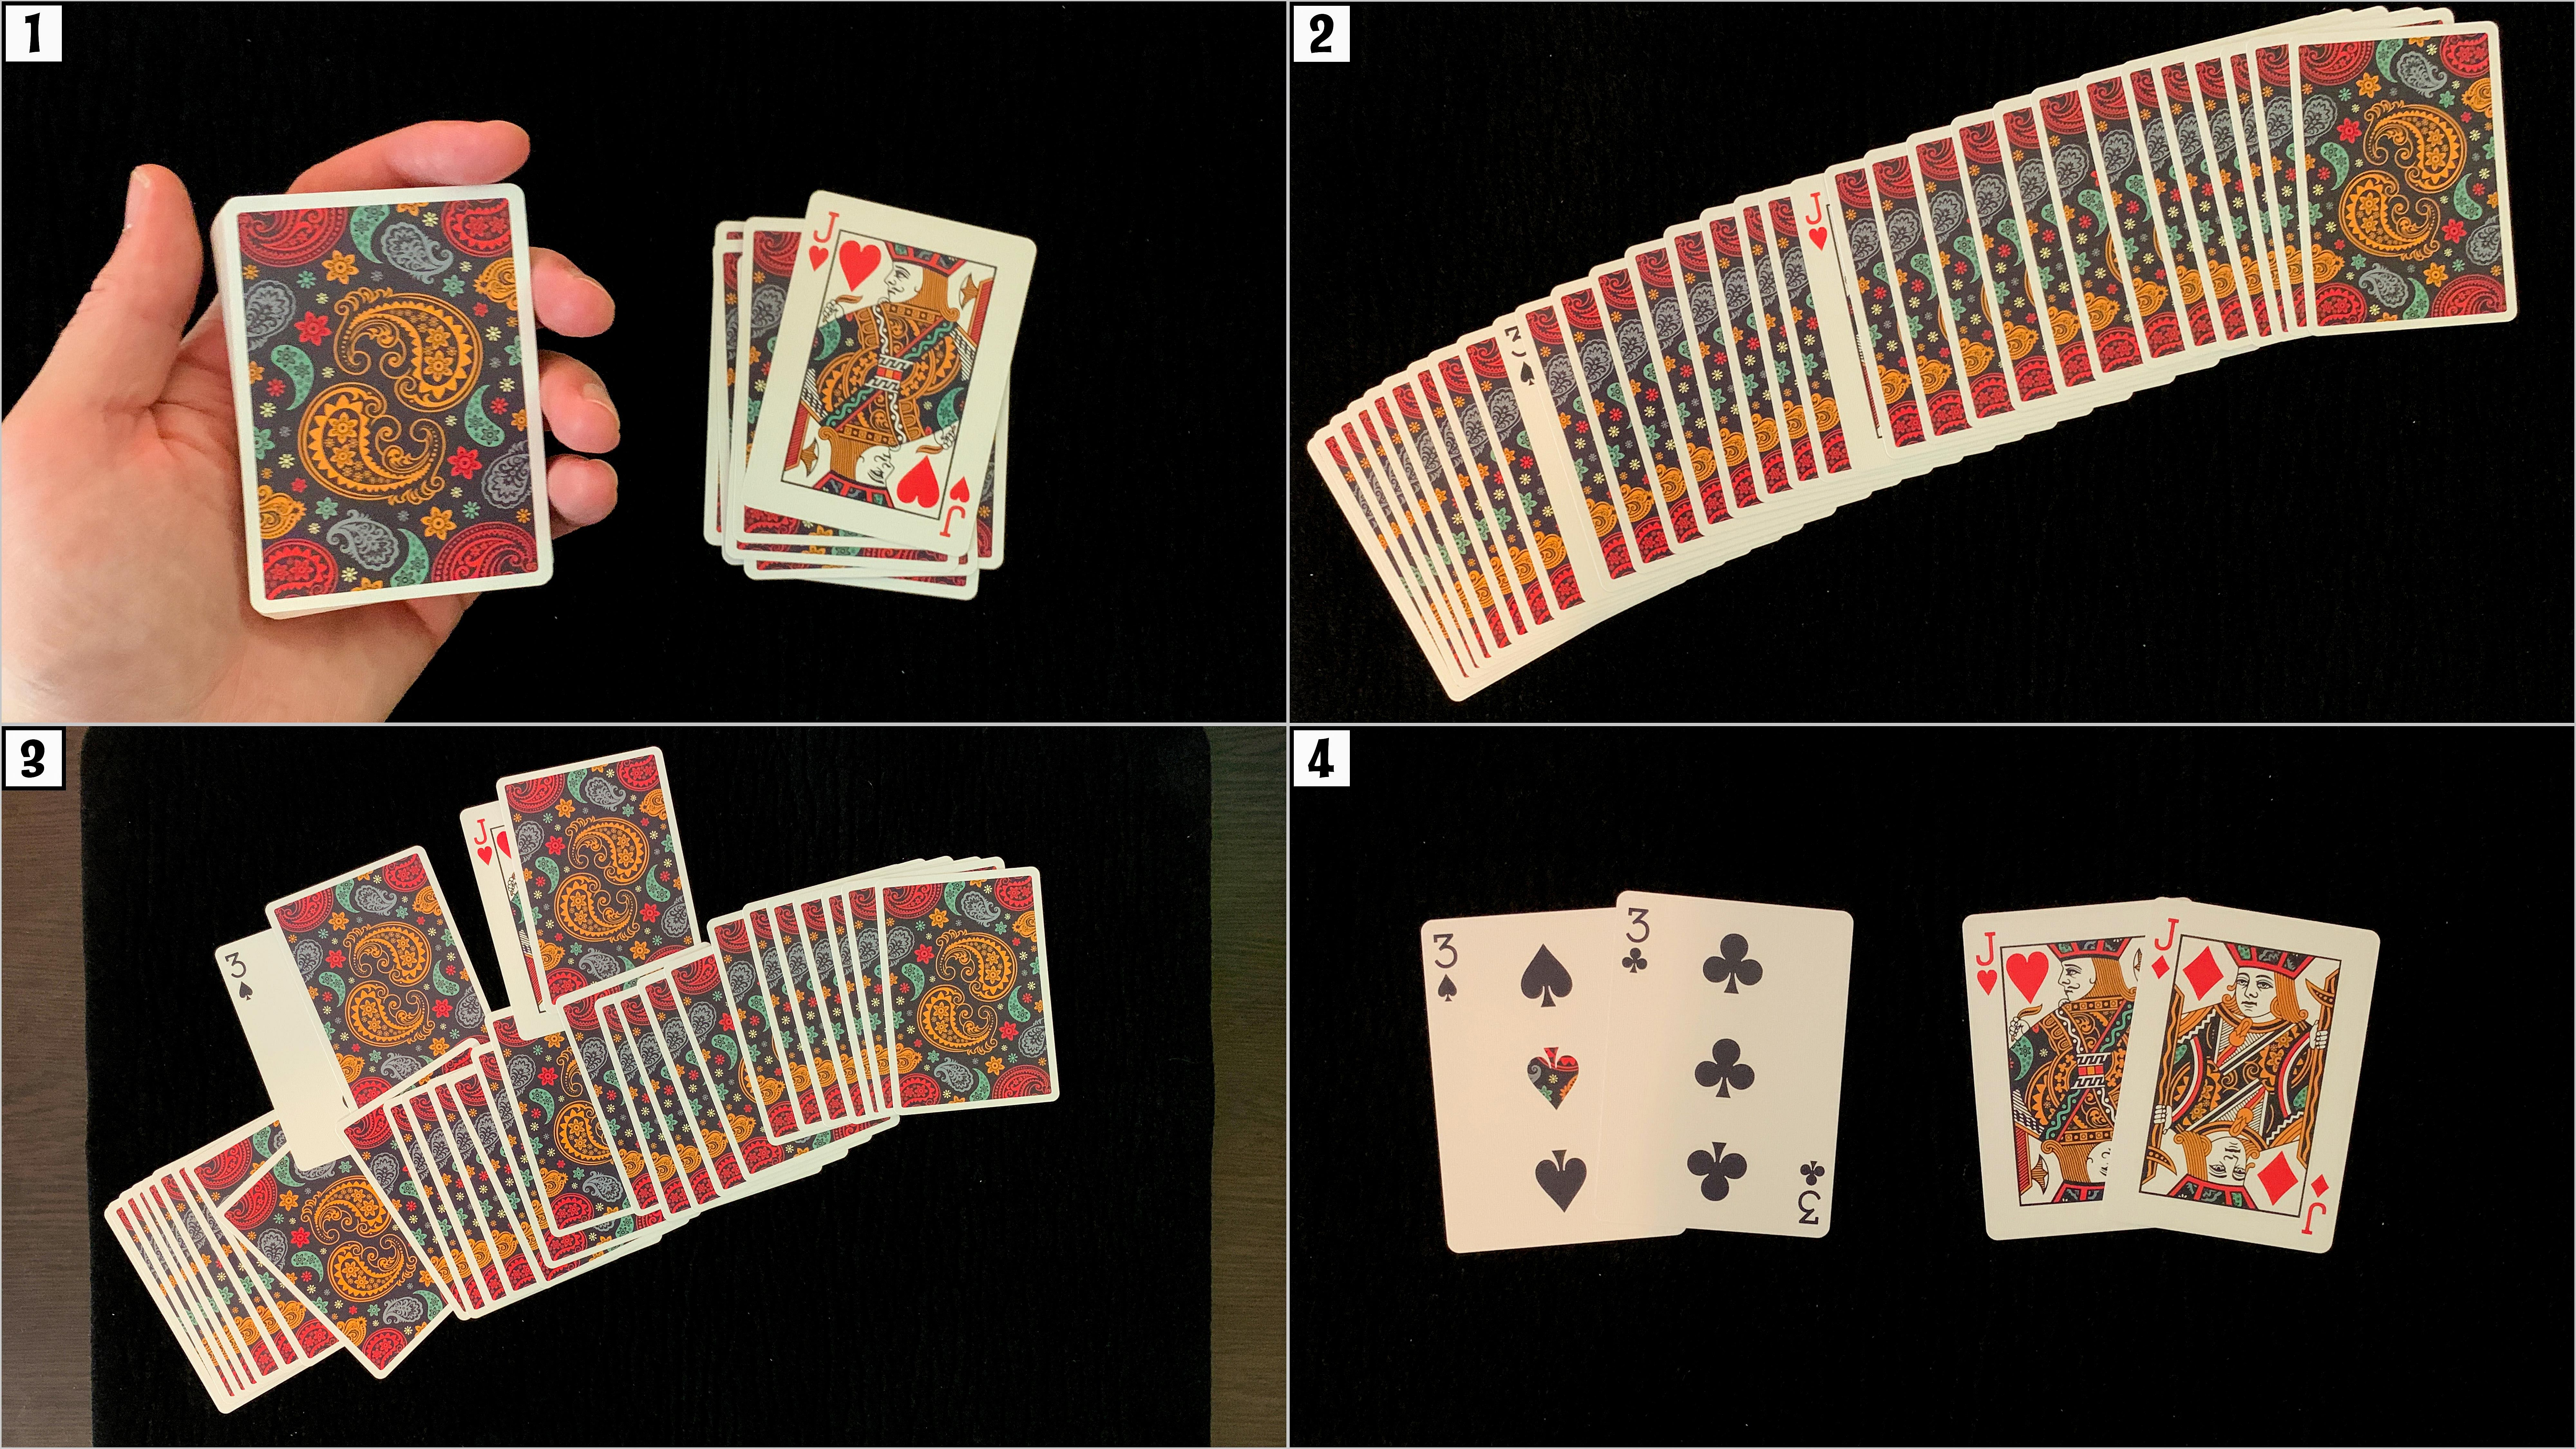 Playing cards are used to teach the classic gemini twins magic trick